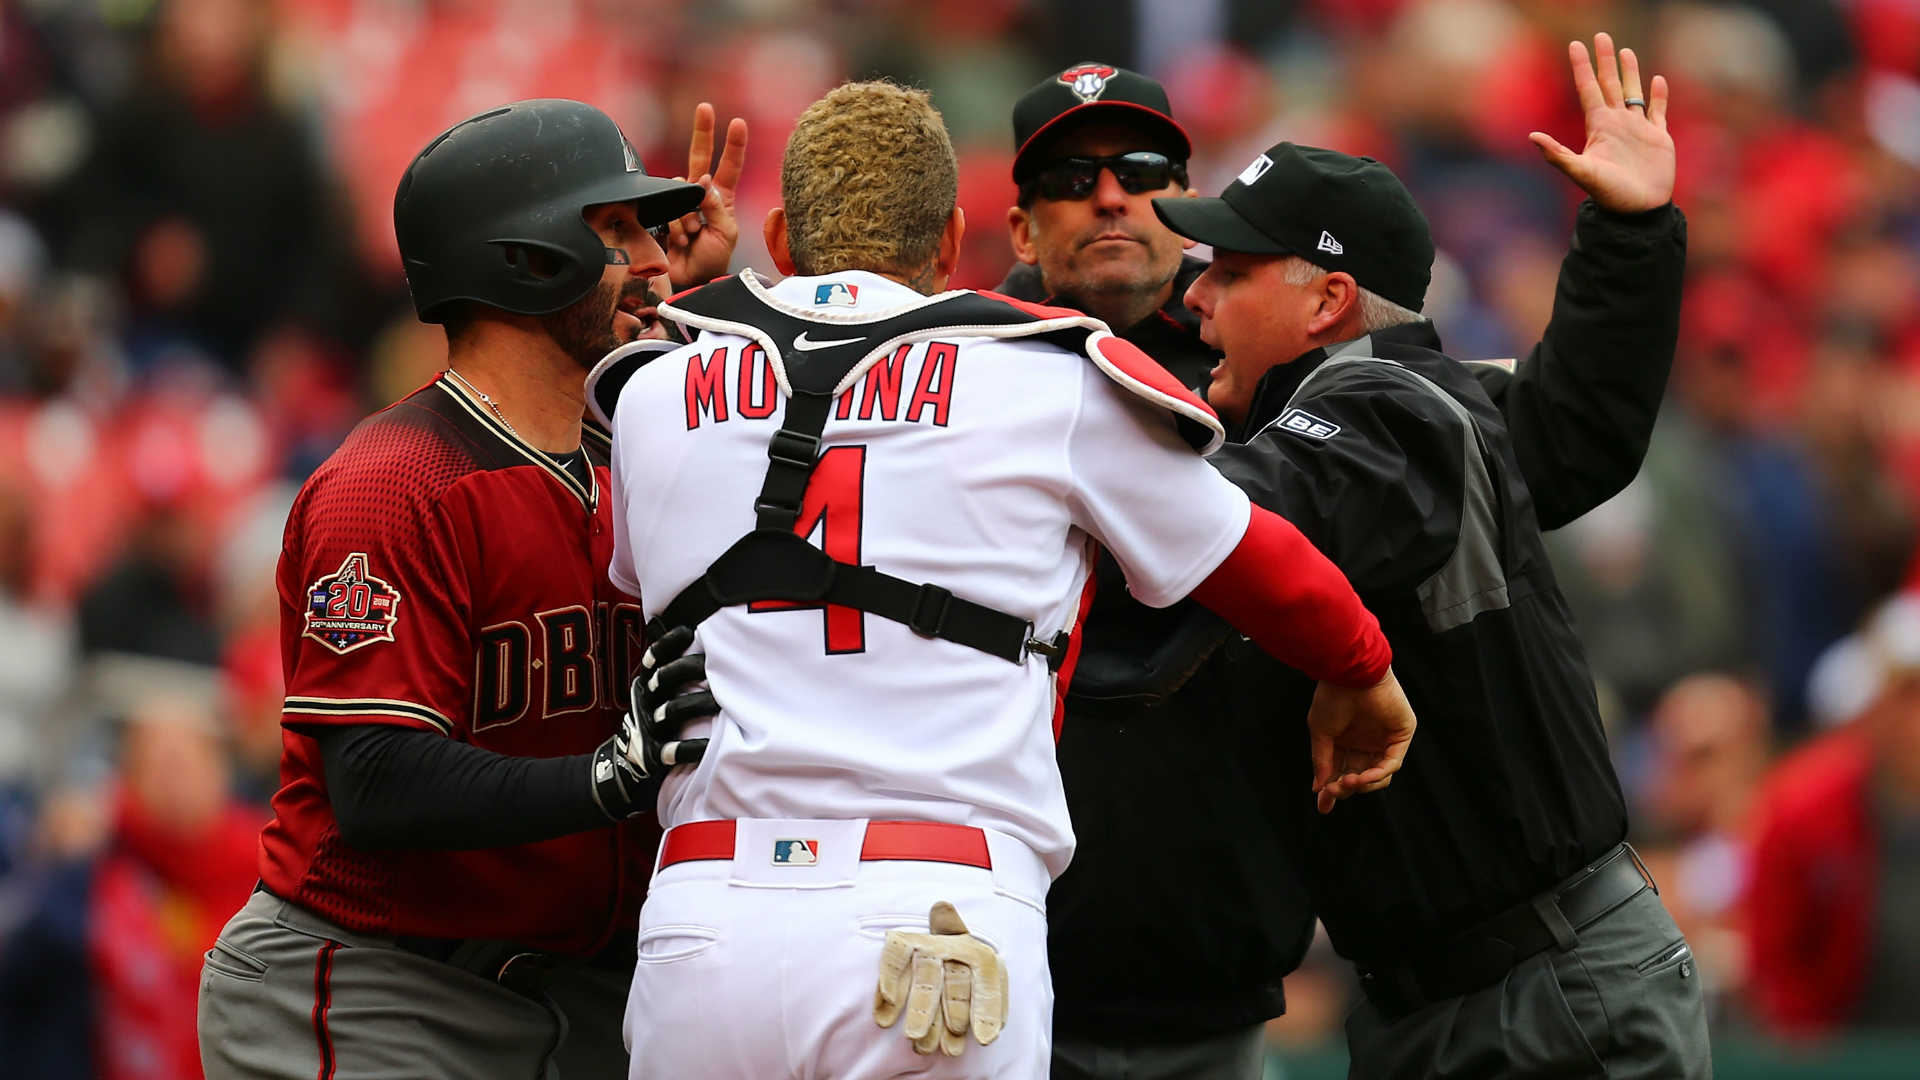 Yadier Molina explains why he went after Torey Lovullo